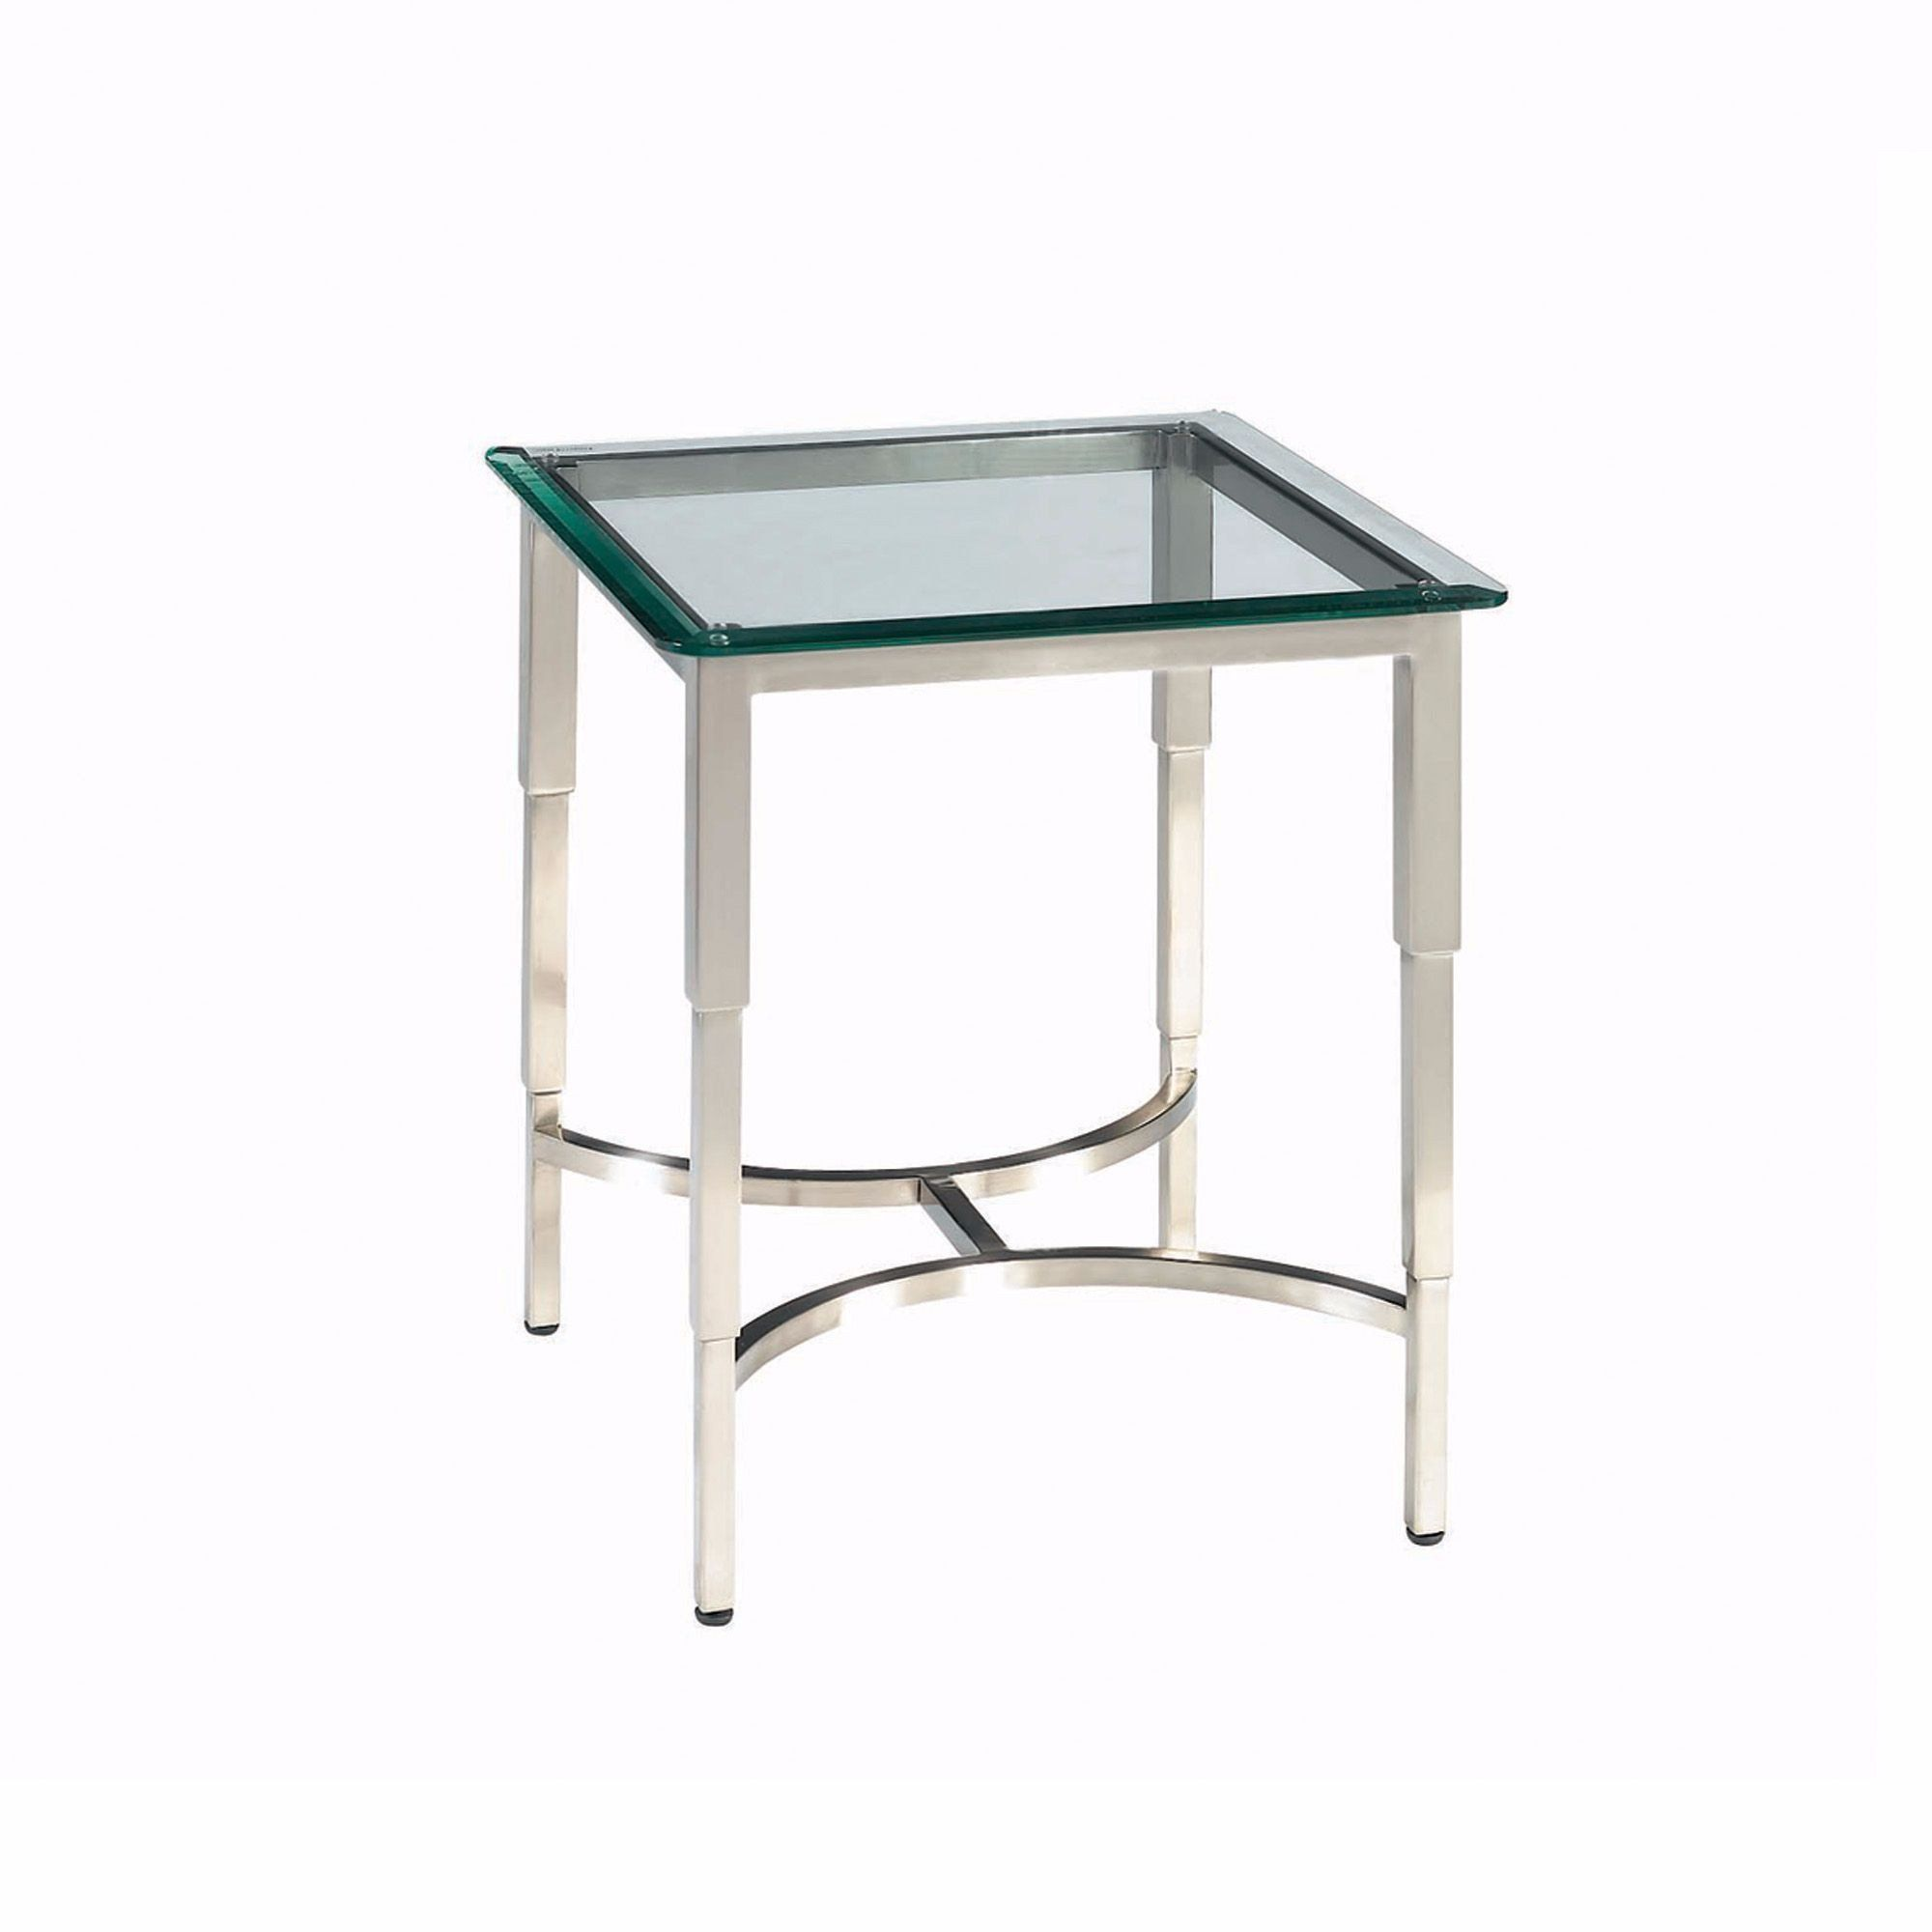 Sheila Square Glass Top End Table At Lamporia For Only 644 24